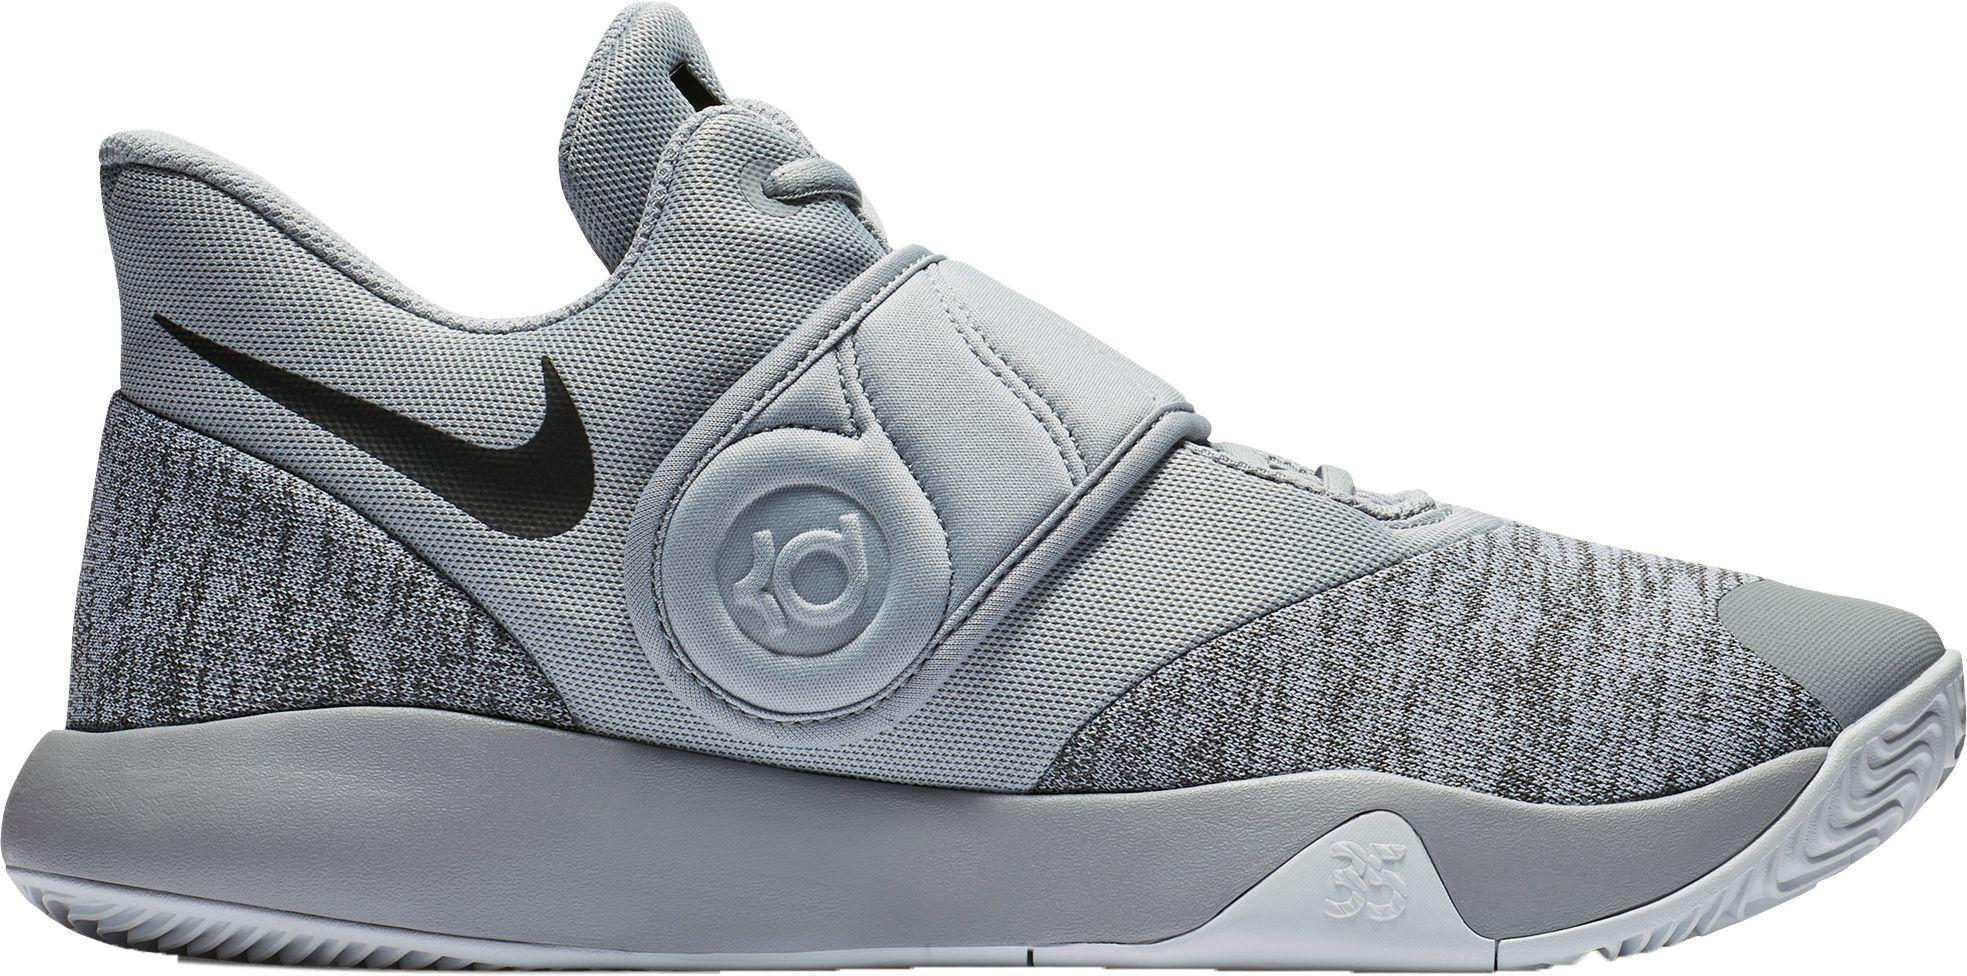 ea6896e3e36d Nike Kd Trey 5 Vi Basketball Shoes in Gray for Men - Lyst